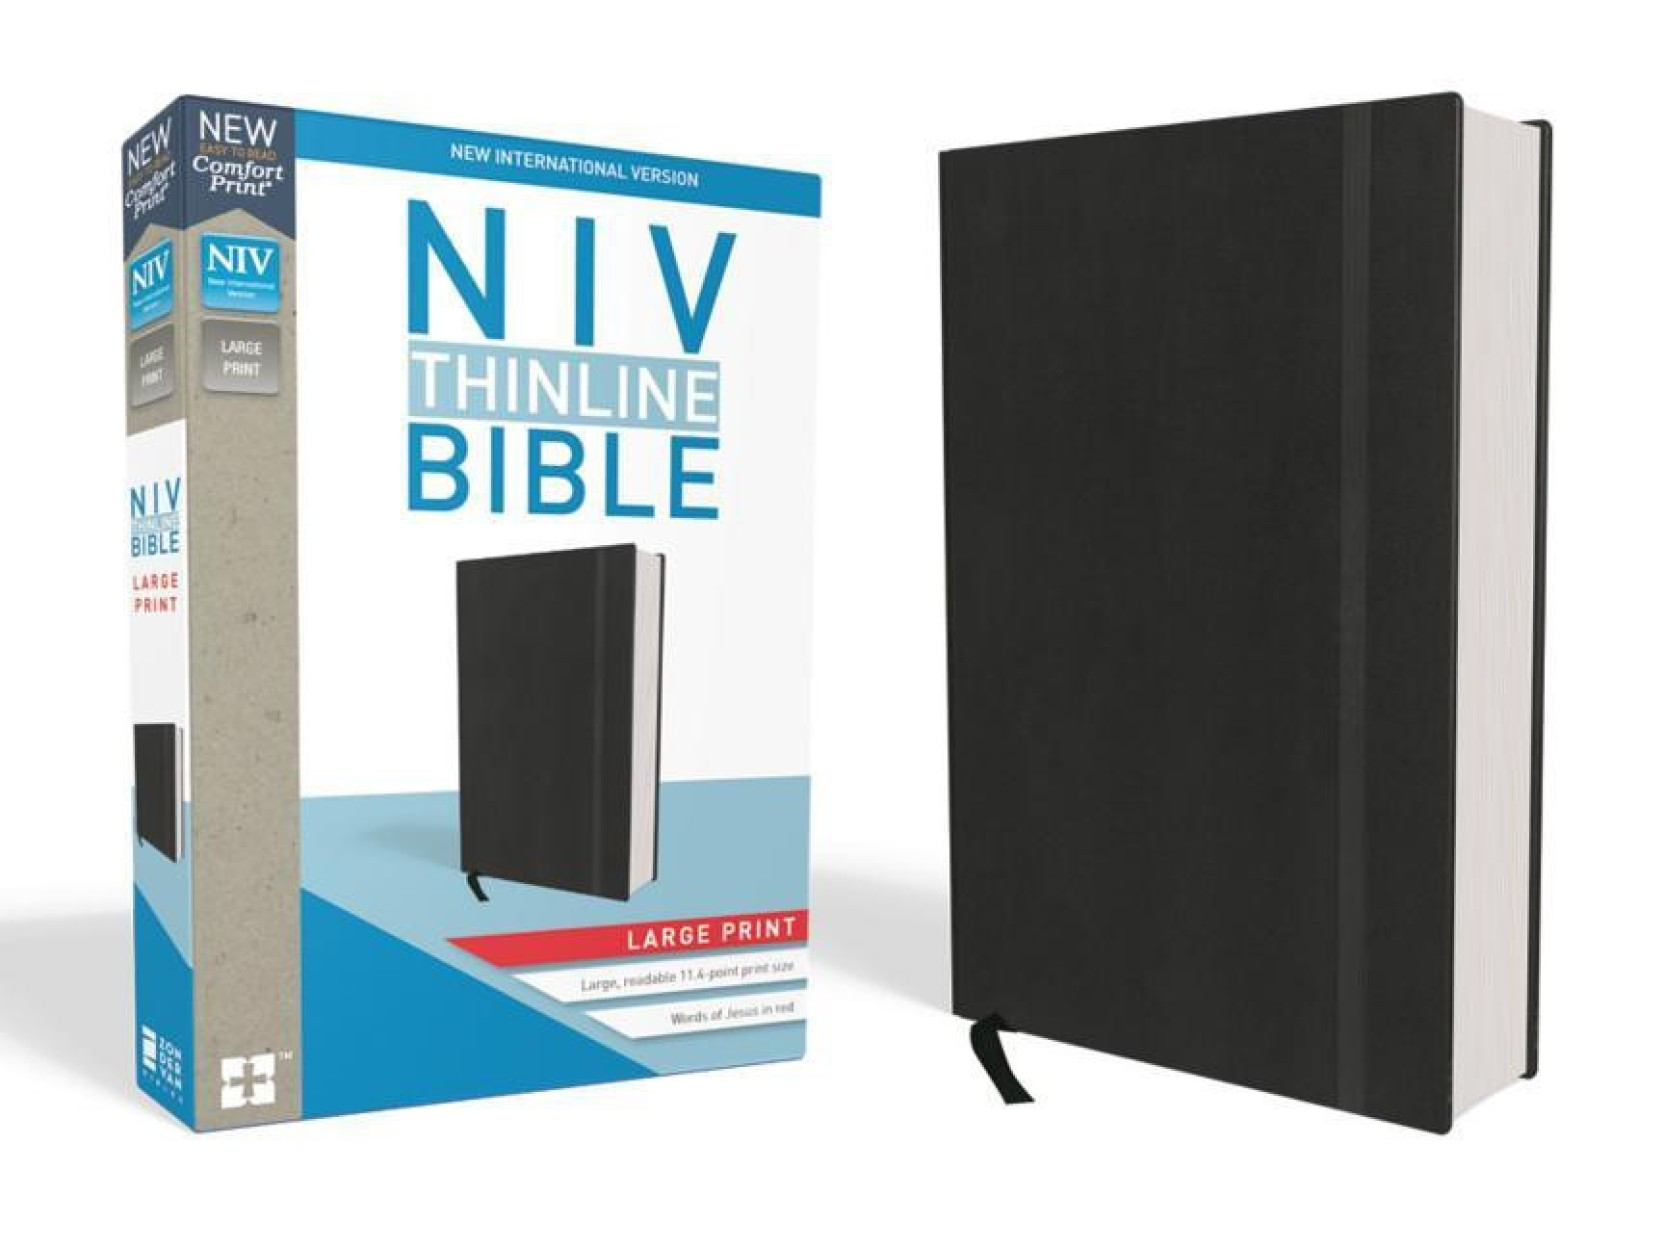 NIV, Thinline Bible, Large Print, Hardcover, Black, Red Letter